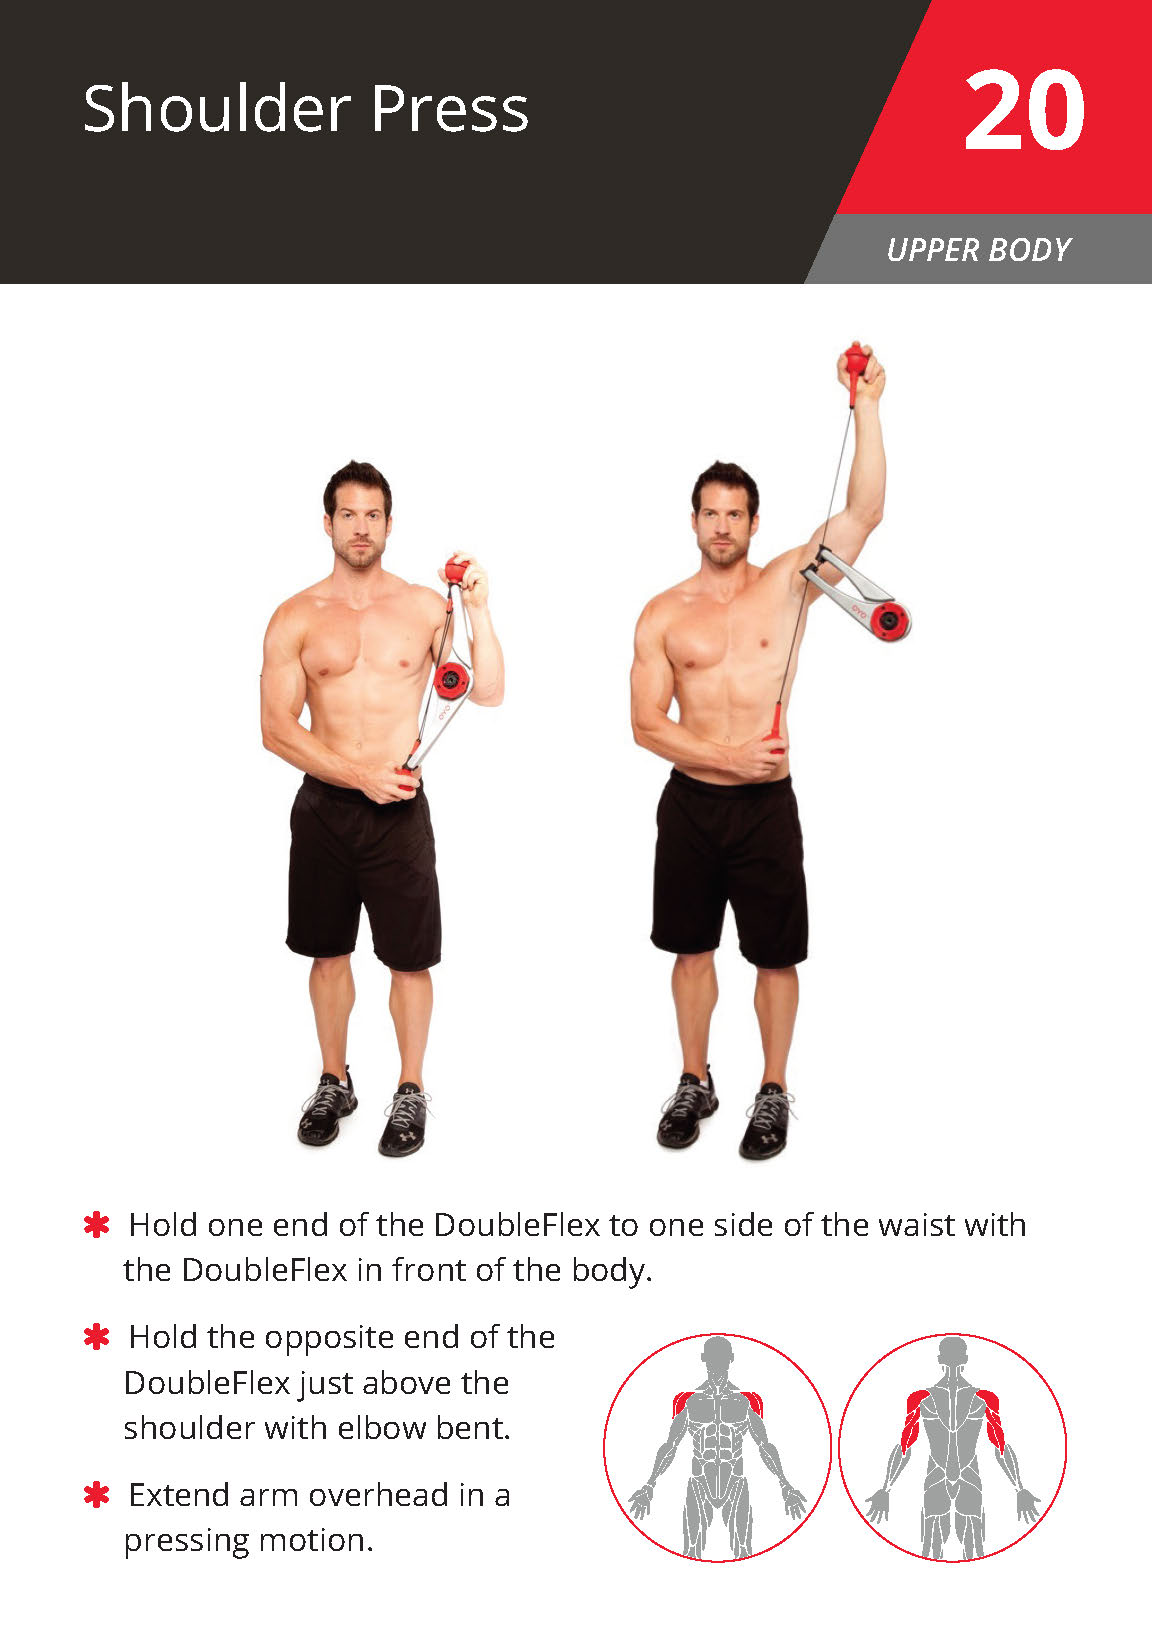 20 Shoulder Press